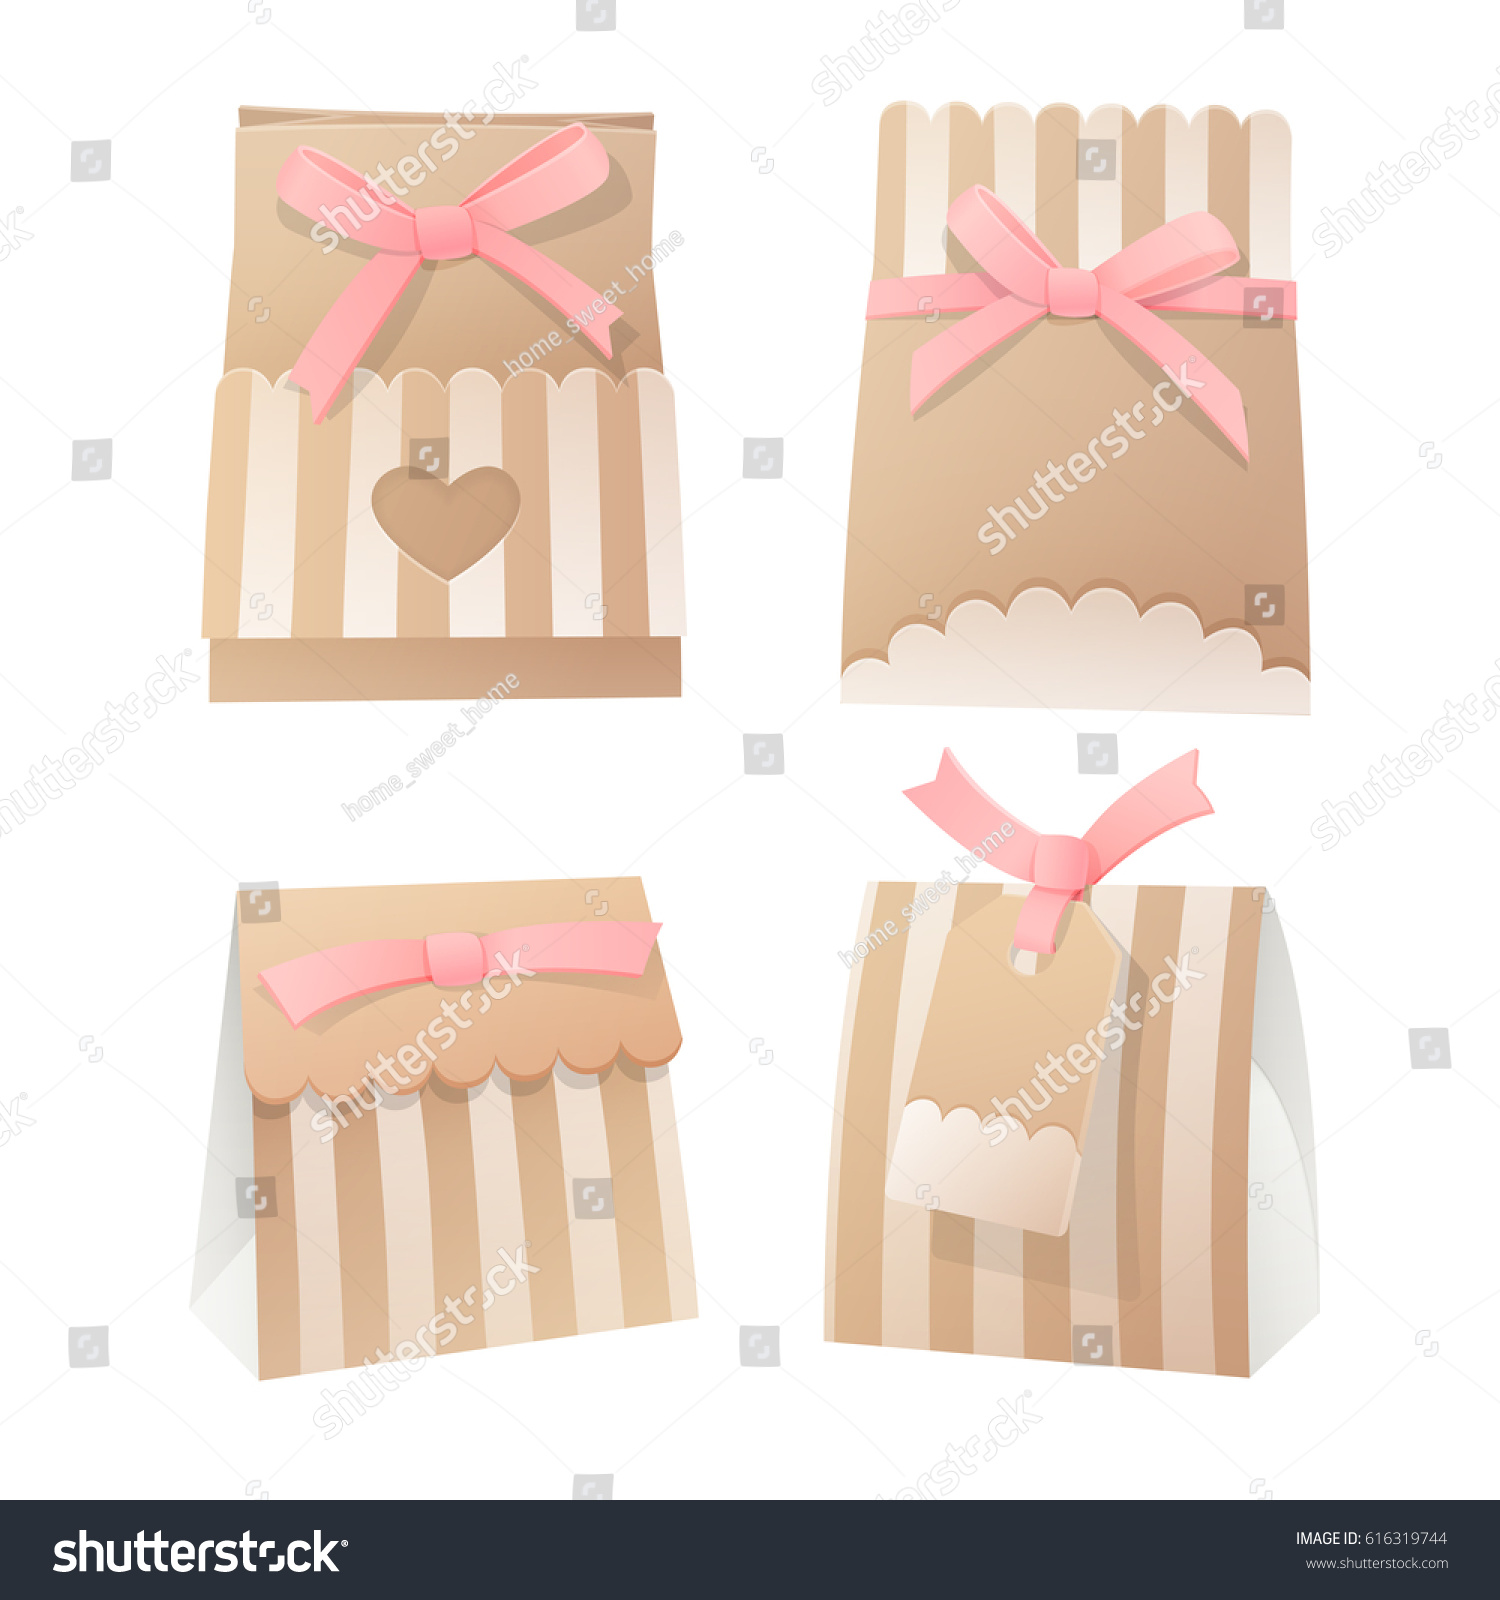 Wedding Party Favor Gift Brown Craft Stock Vector 616319744 ...